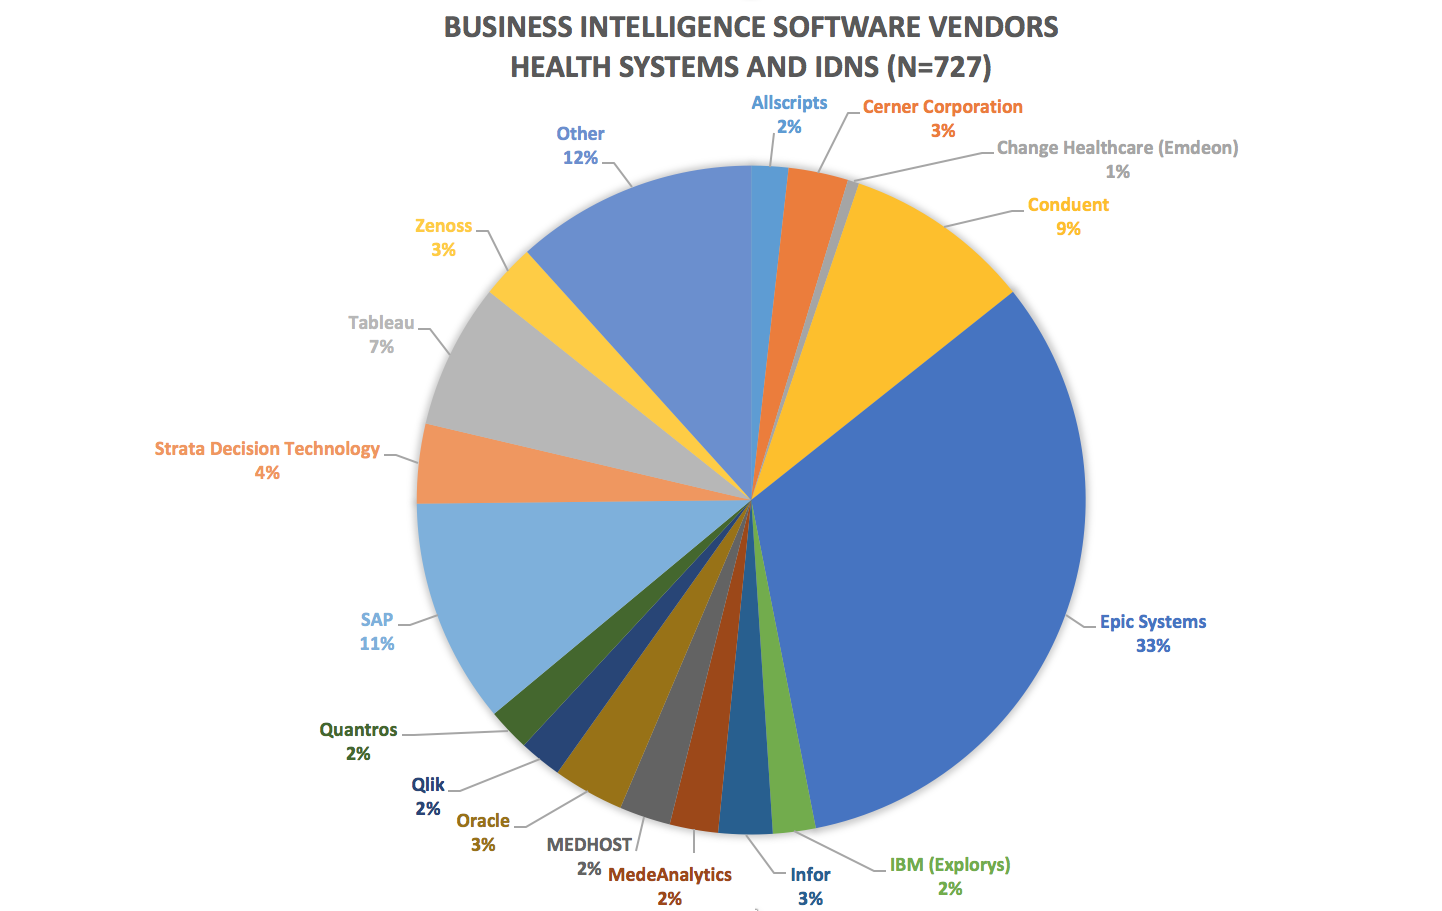 Shifting Healthcare Business Intelligence Market Offers